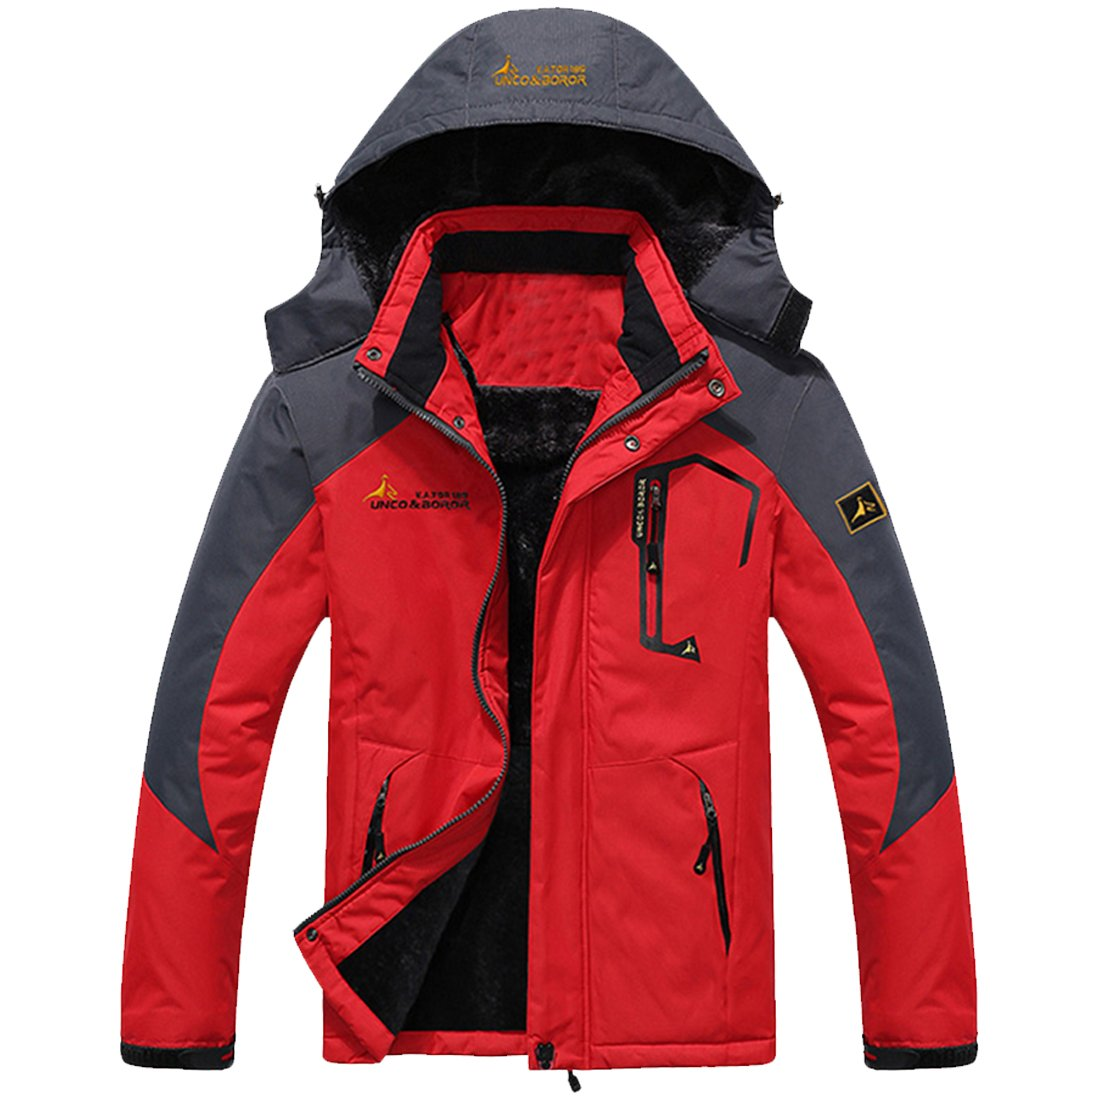 Cozy Age Unisex Waterproof Mountain Jacket Lined Windproof Skiing Jacket Amazon.com